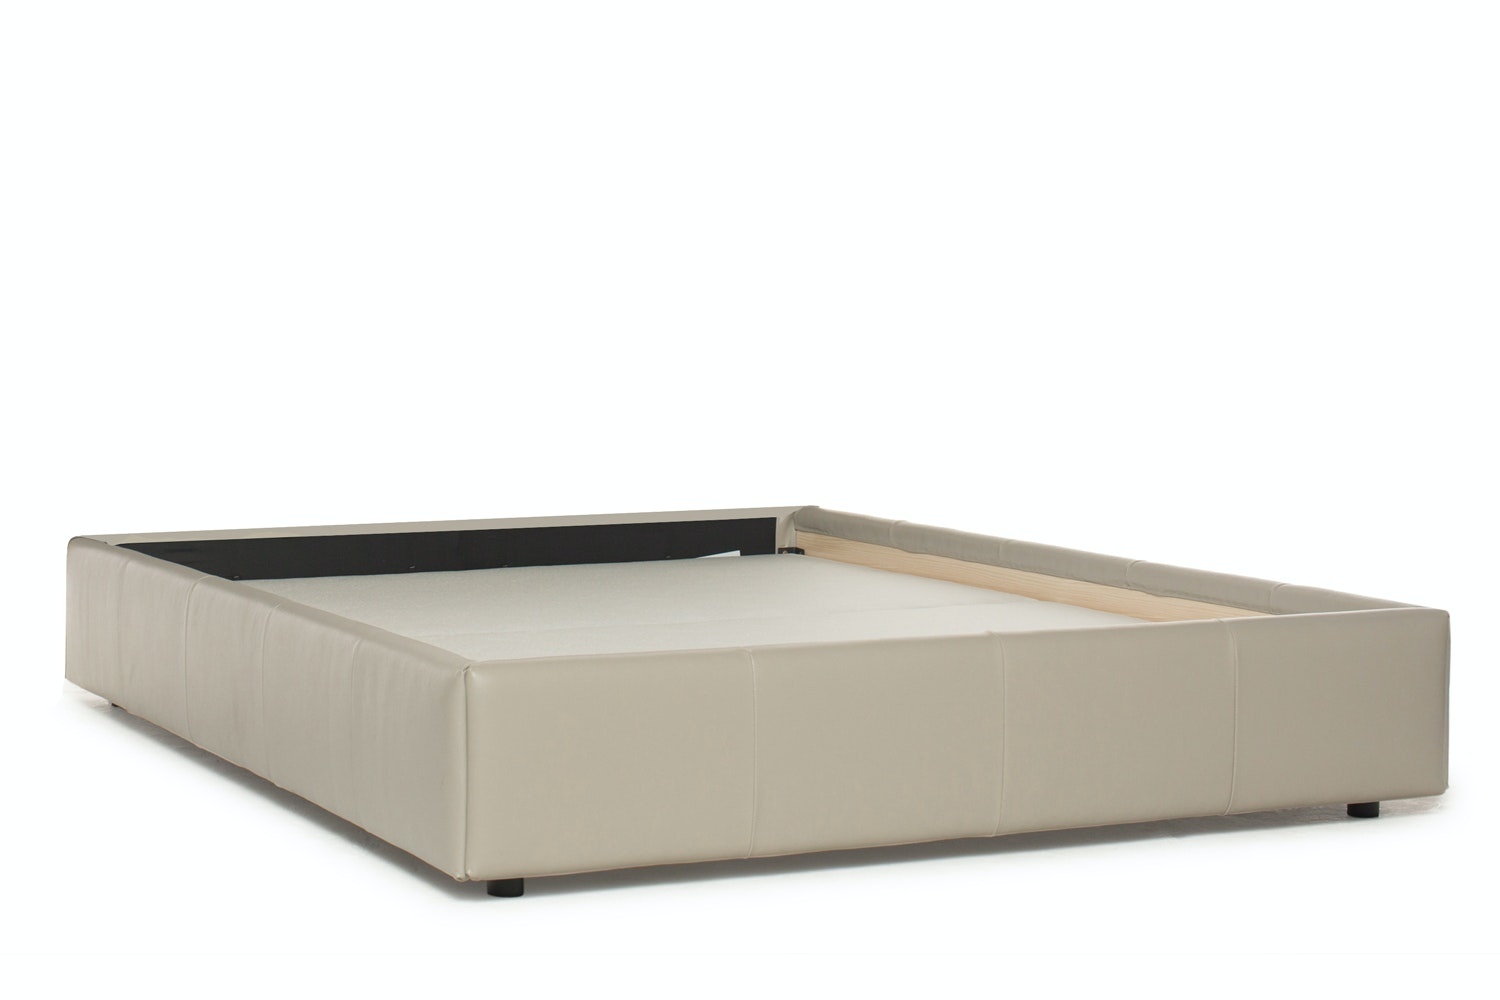 Sheraton Bed base | 5FT